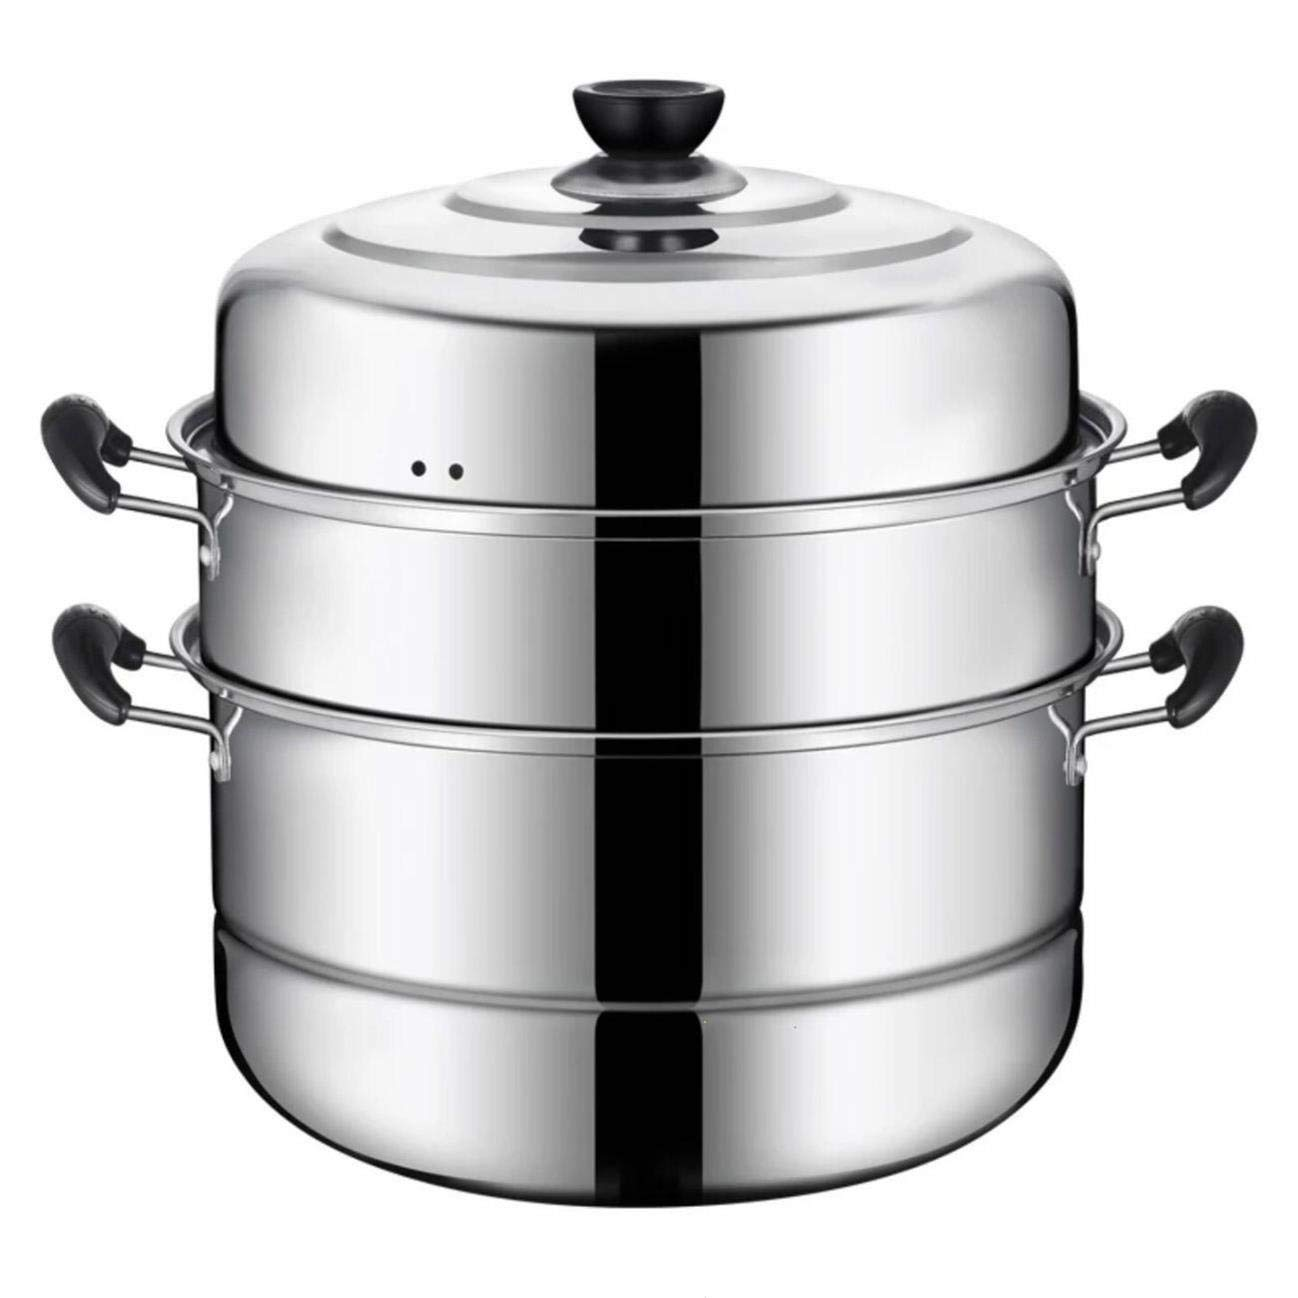 VONOTO Stainless steel Thicken Three floors 3 Tier 11'' Steamer Cookware Pot Sauce pot Multi-layer Boiler (Three Floors 11'') by VONOTO